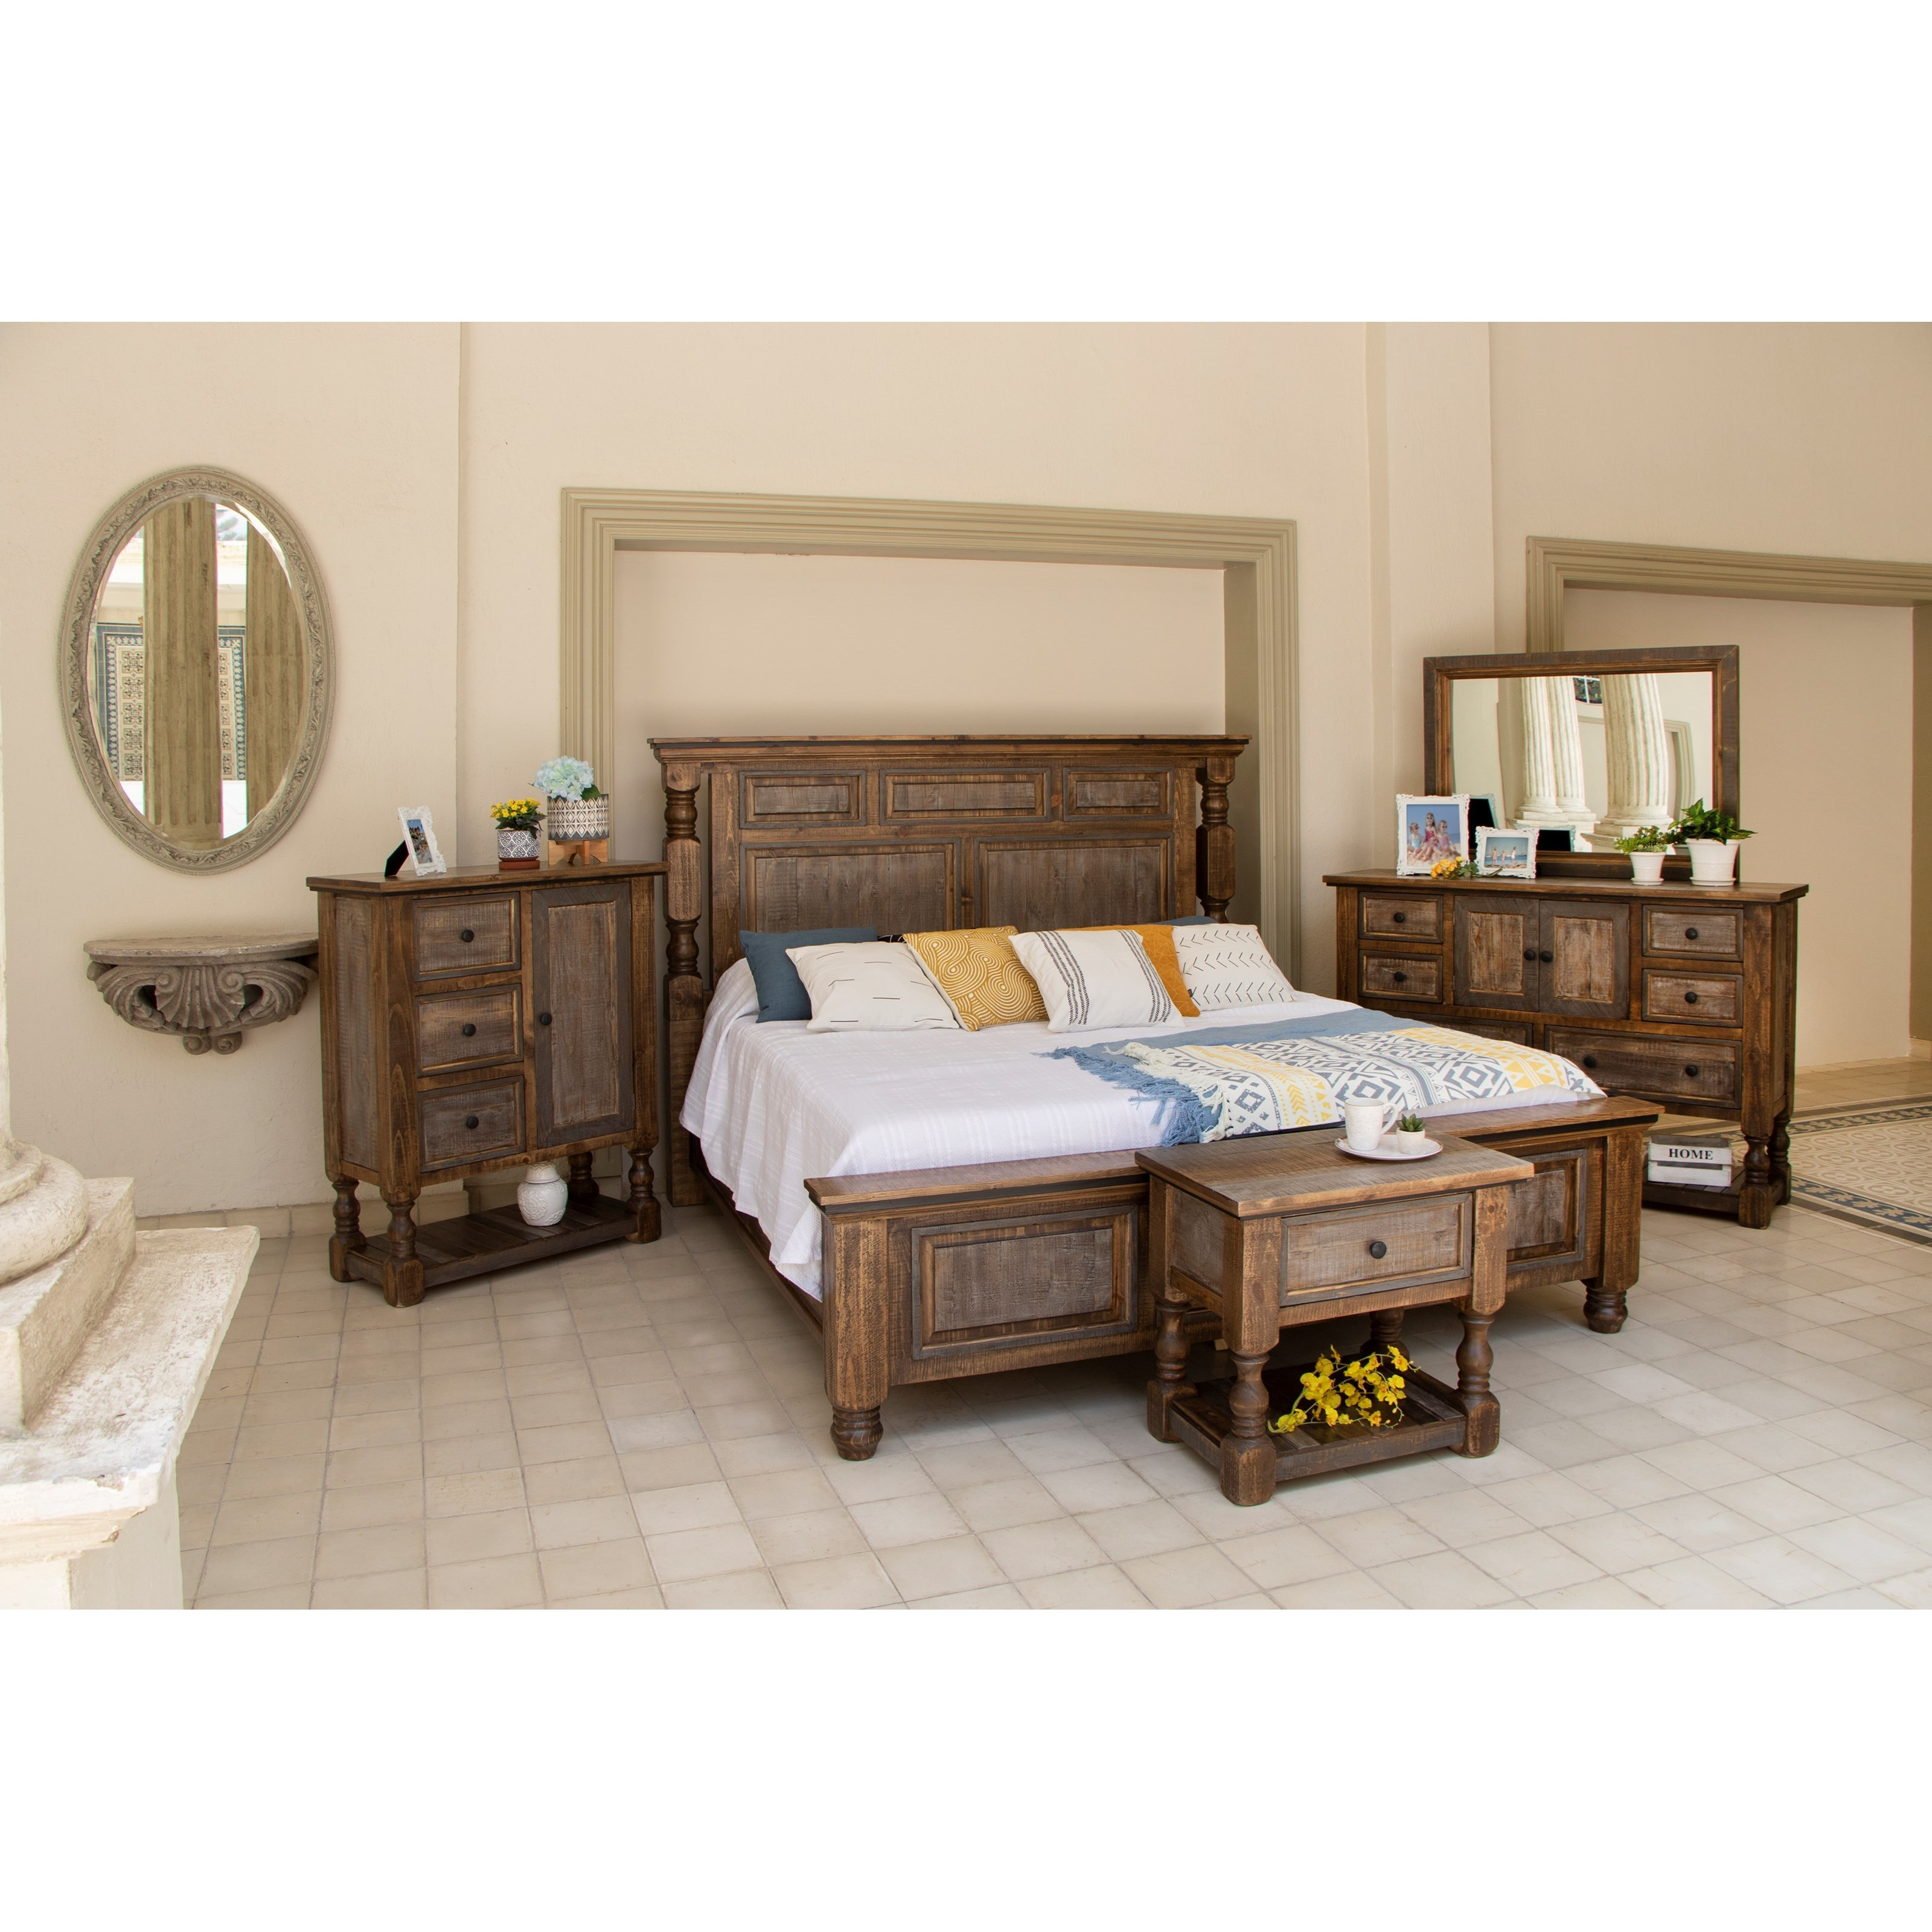 Stone Brown Bedroom Group 1 by International Furniture Direct at Catalog Outlet